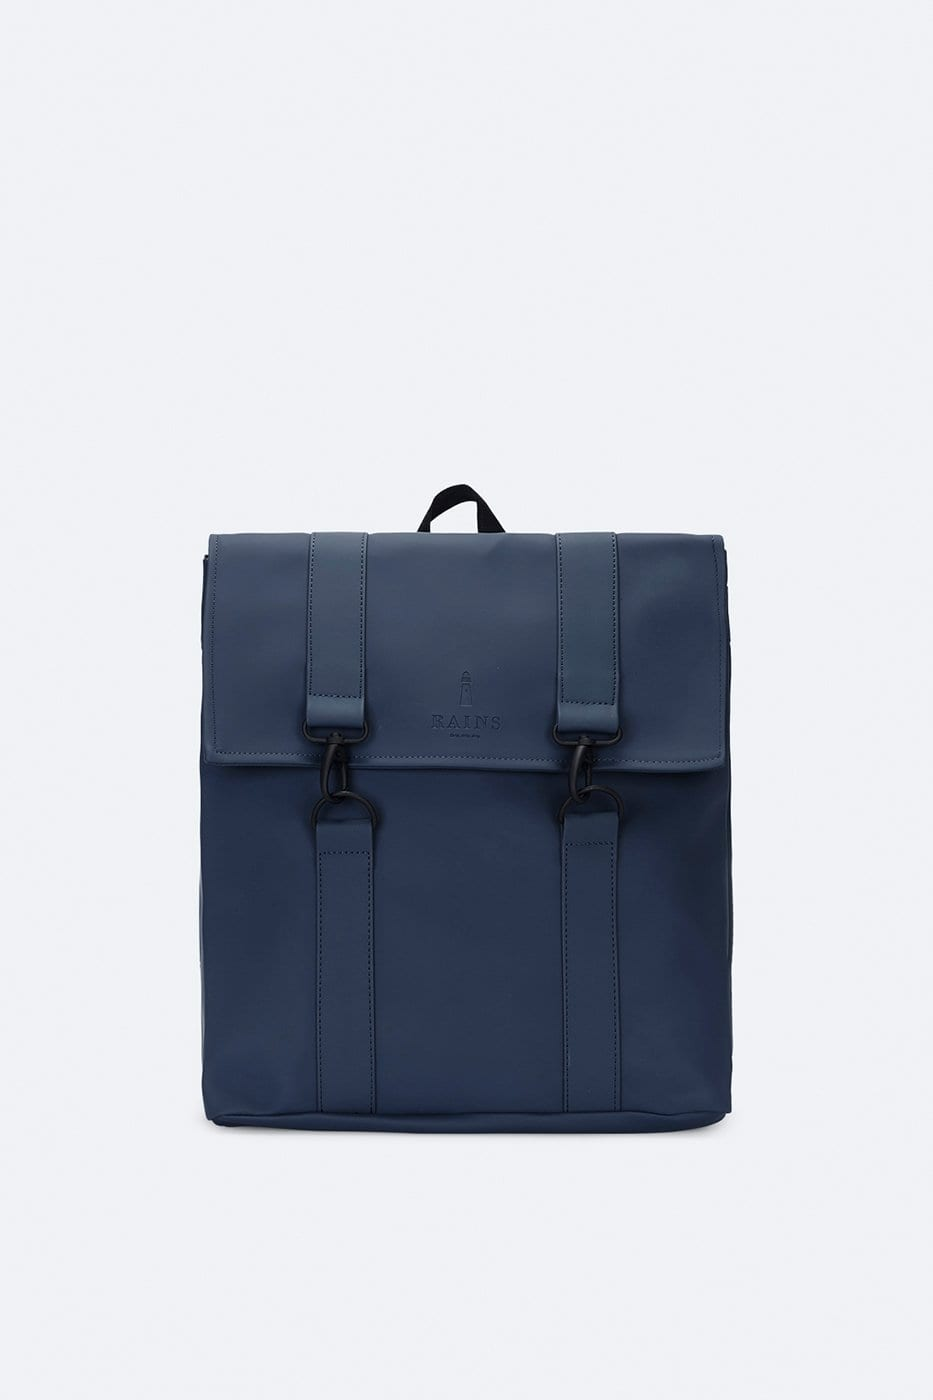 MSN Bag / Neighborhood Goods